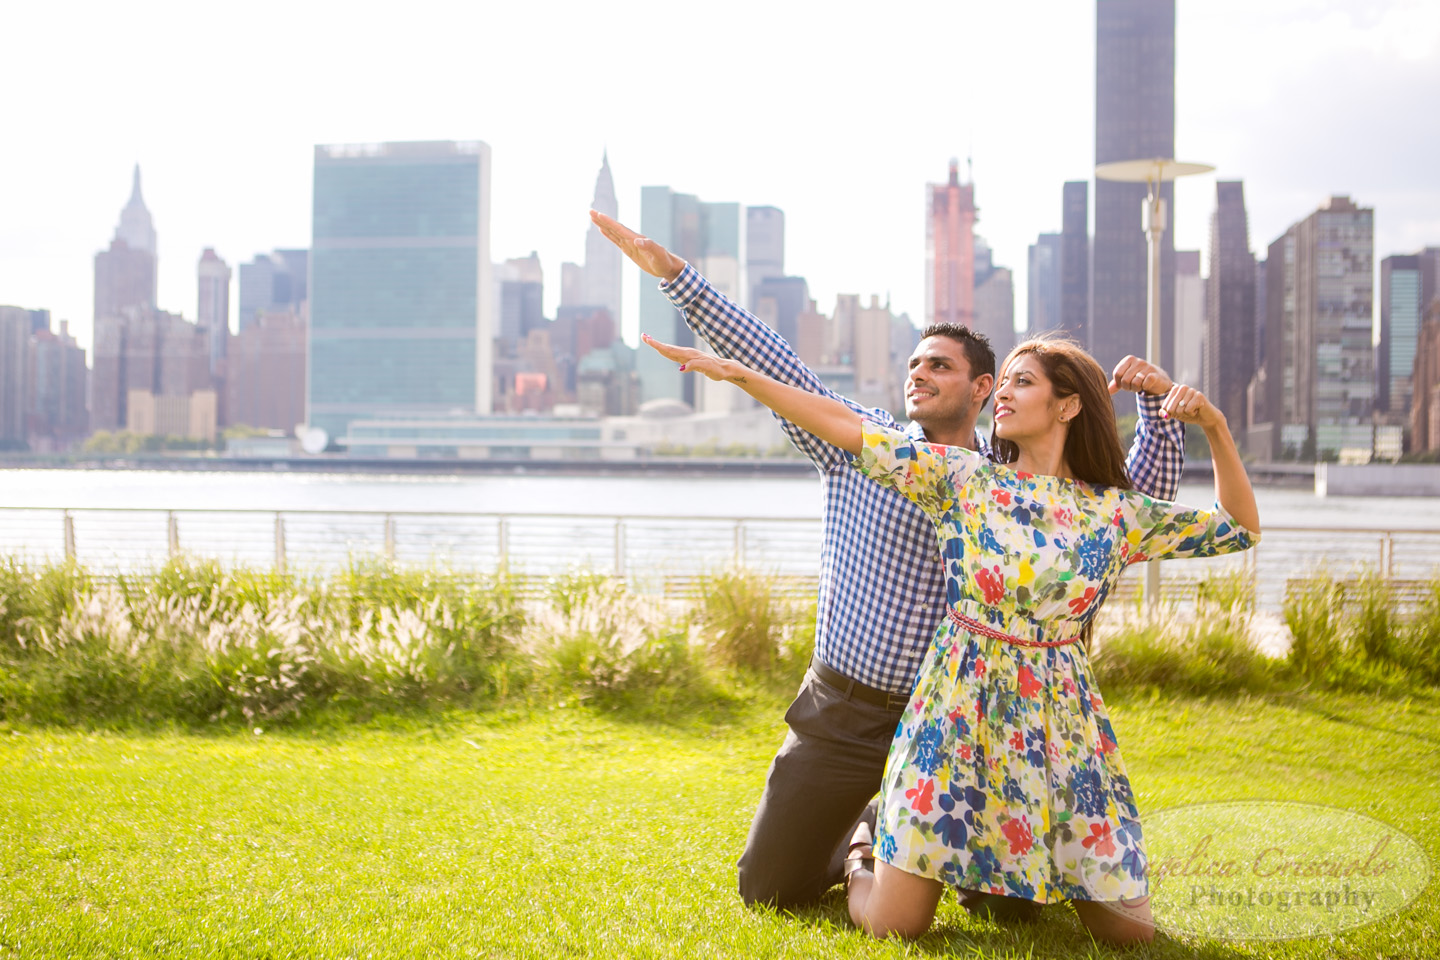 New_York_Engagement_Photography_LIC_Queens_Gantry_Hindu_WeddingW-120